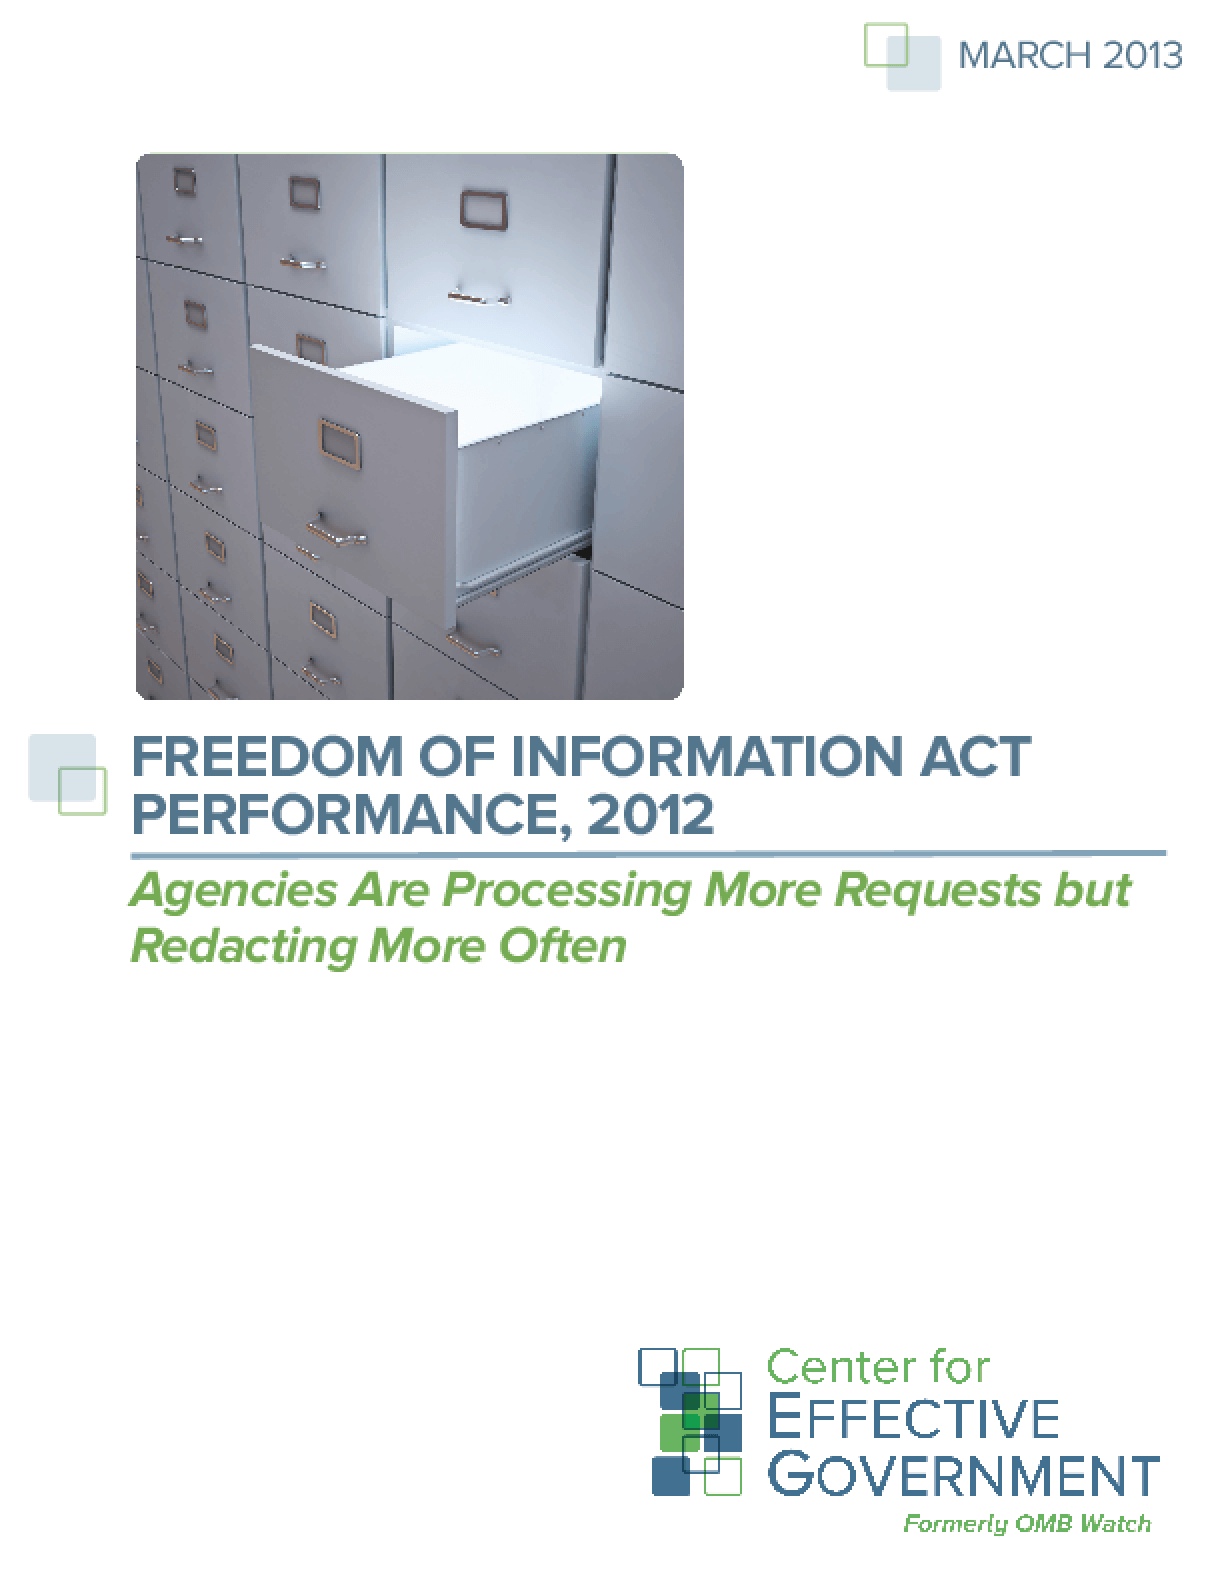 Freedom of Information Act Performance, 2012: Agencies Are Processing More Requests but Redacting More Often